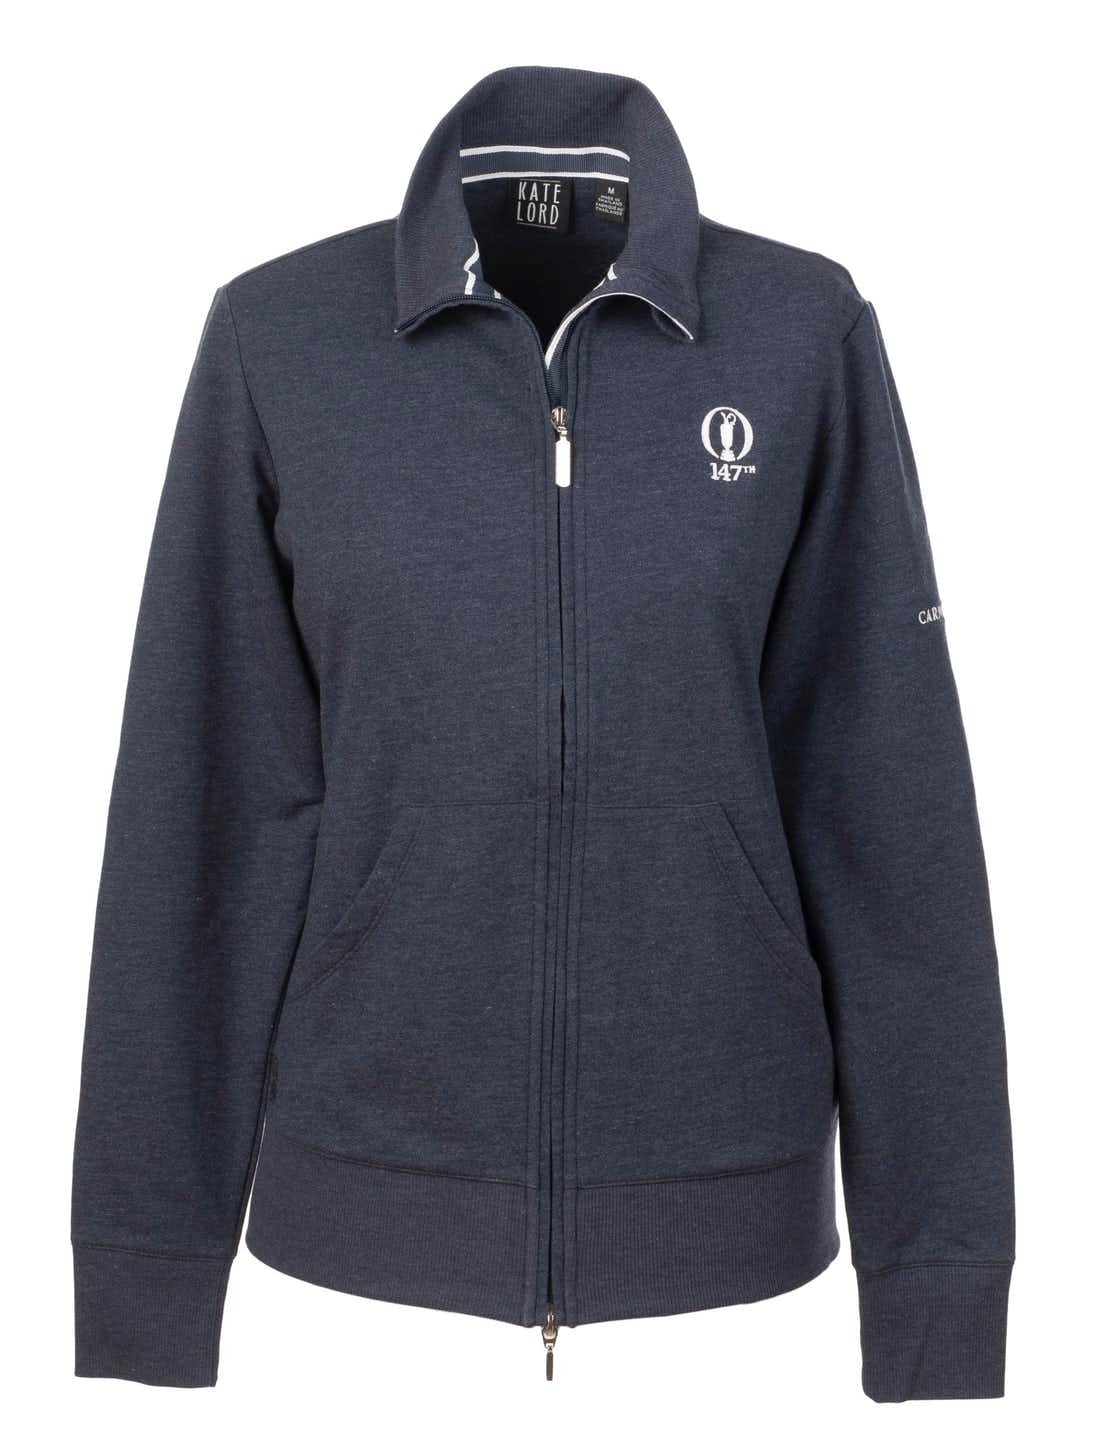 147th Carnoustie Kate Lord Jacket - Blue